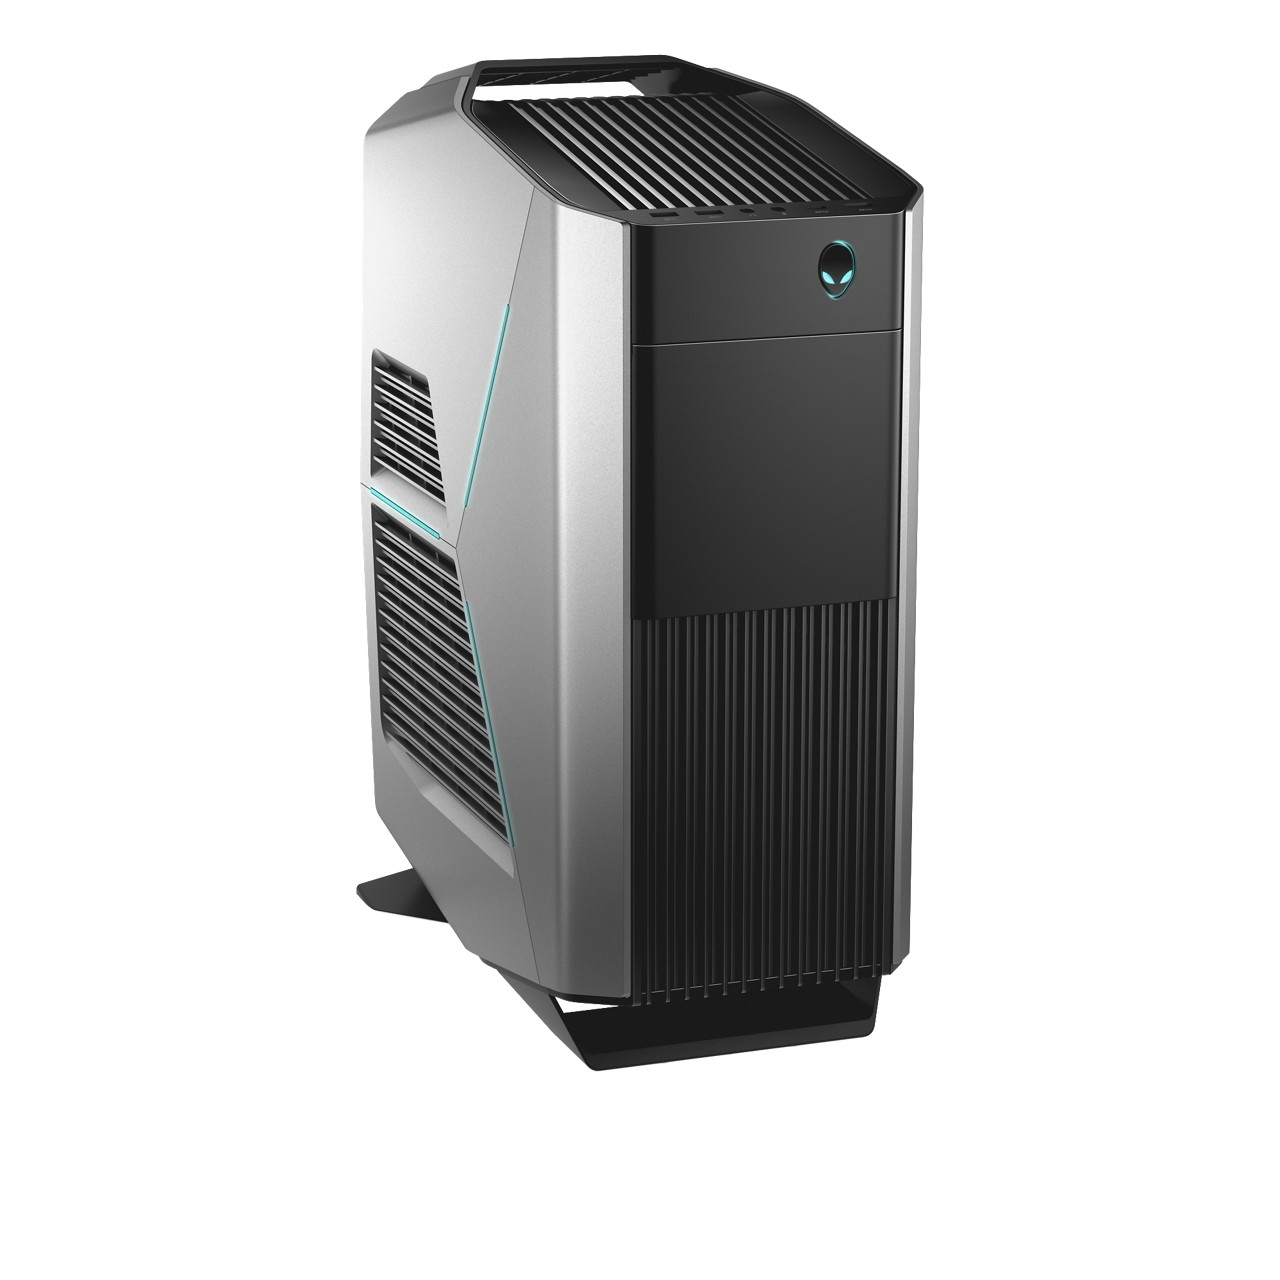 Alienware Aurora Compact Gaming Desktop i7-9700K 9th Gen Intel Core 3.60Ghz/32GB/2TB+256GB/Nvidia Geforce RTX 2080 8GB/Windows 10